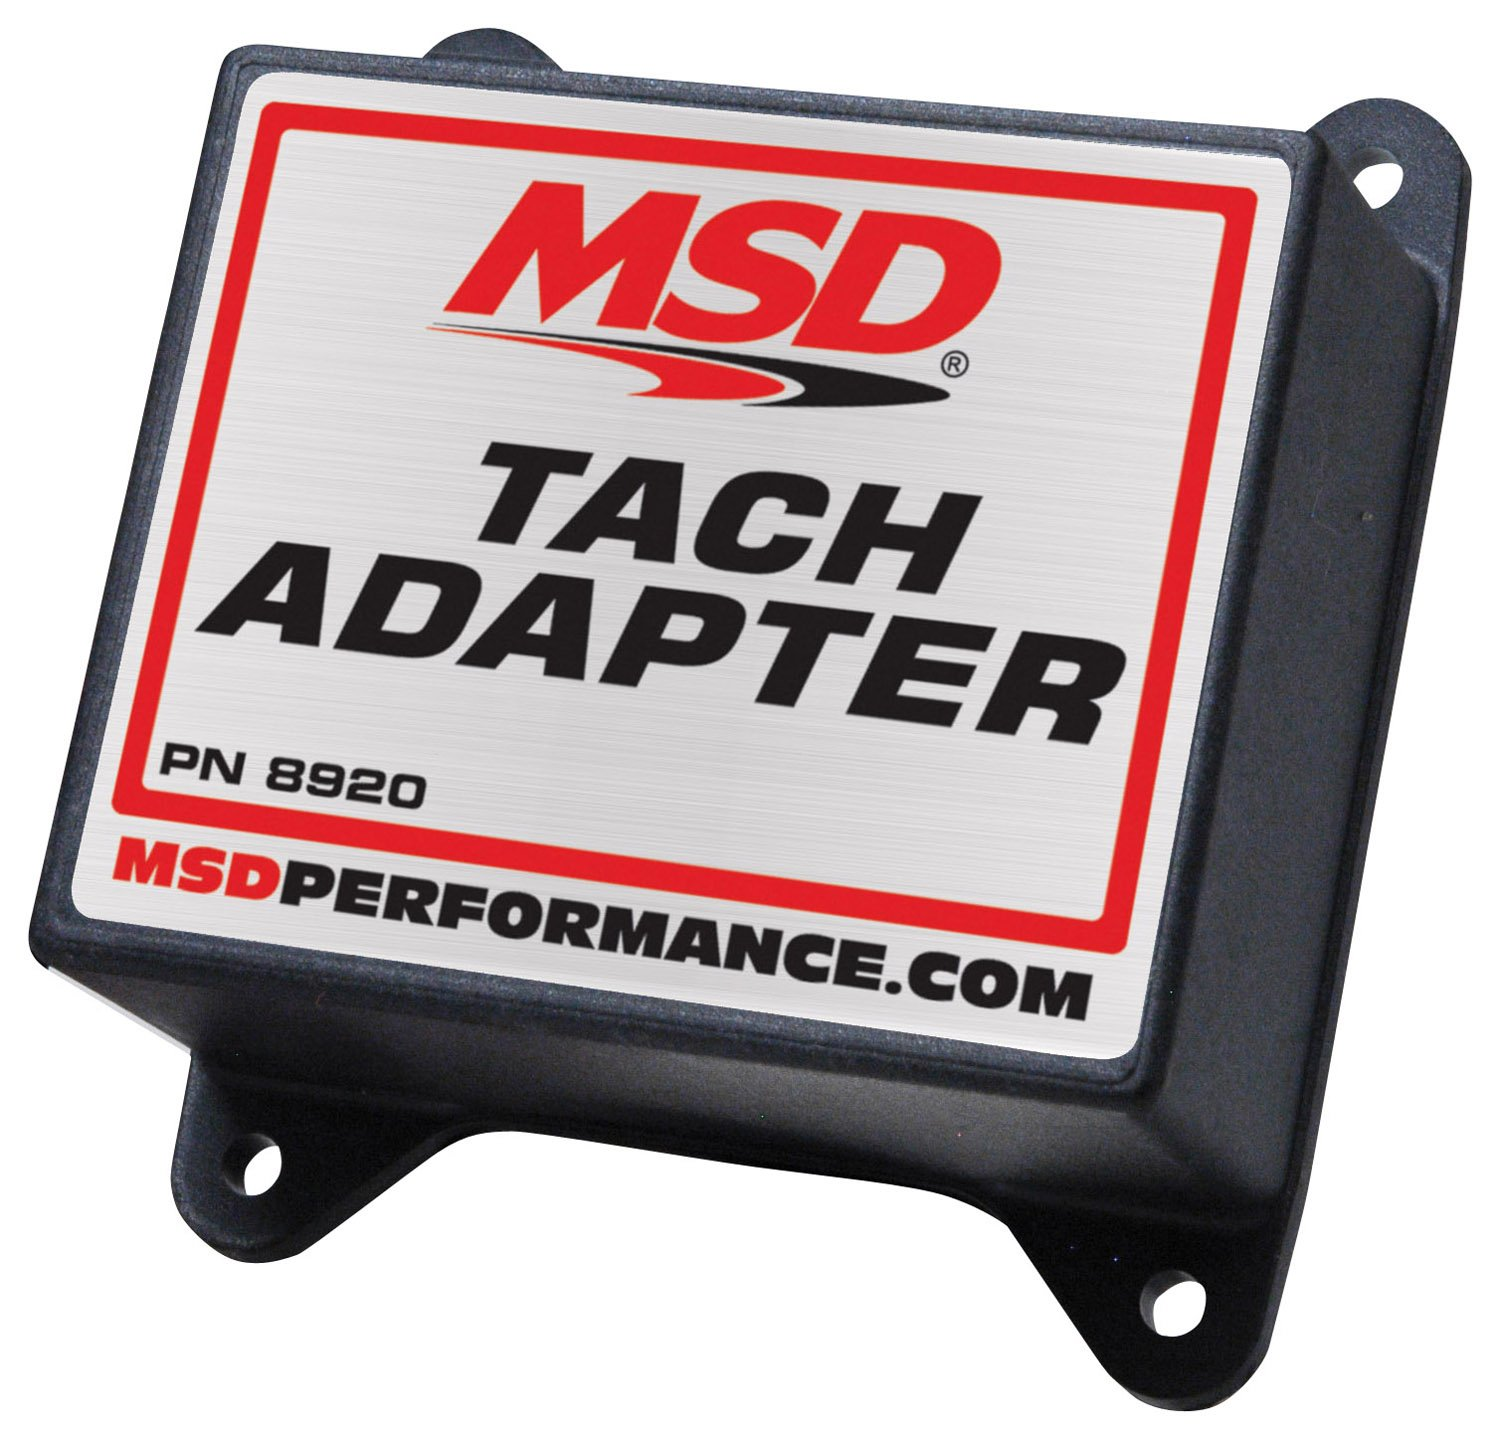 tach adapters msd performance products tech support 888 258 3835 tach fuel adapter